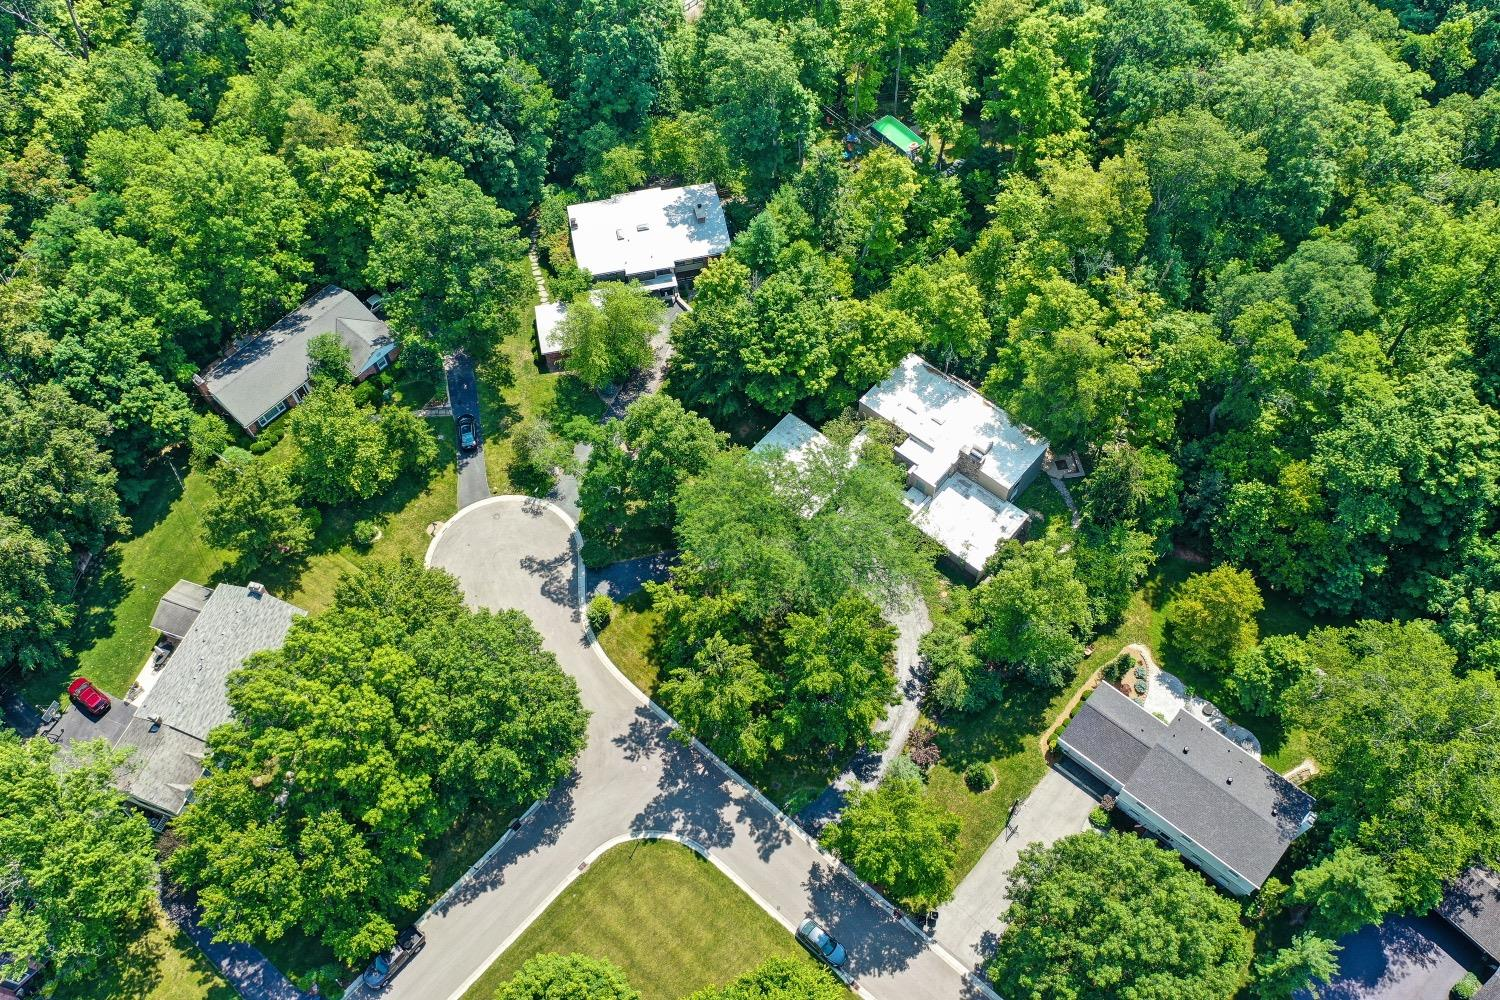 This aerial view shows the verdant wooded setting.